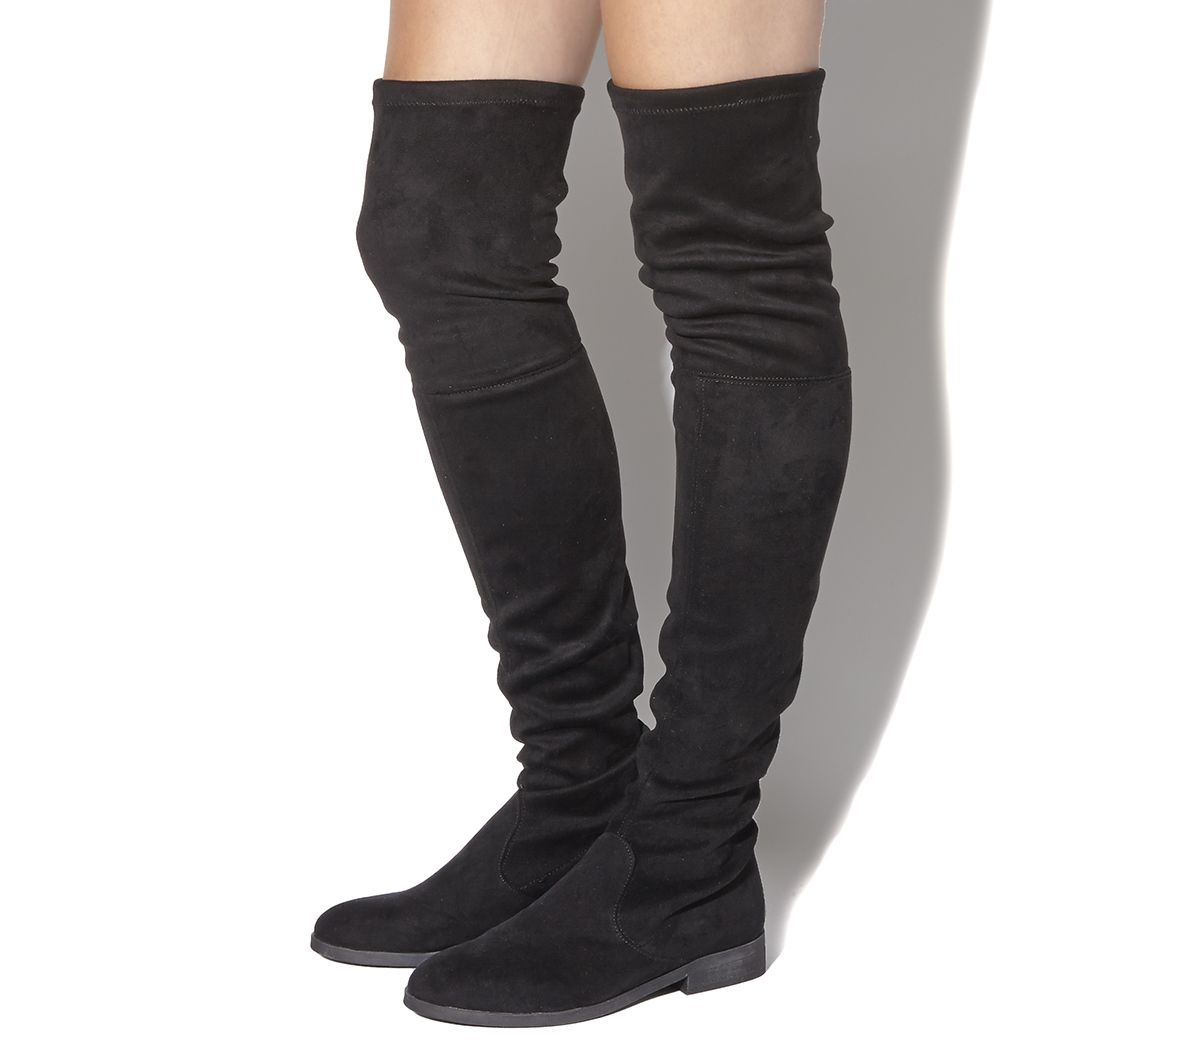 Black Office Eden Stretch Over The Knee Boots From Co Uk